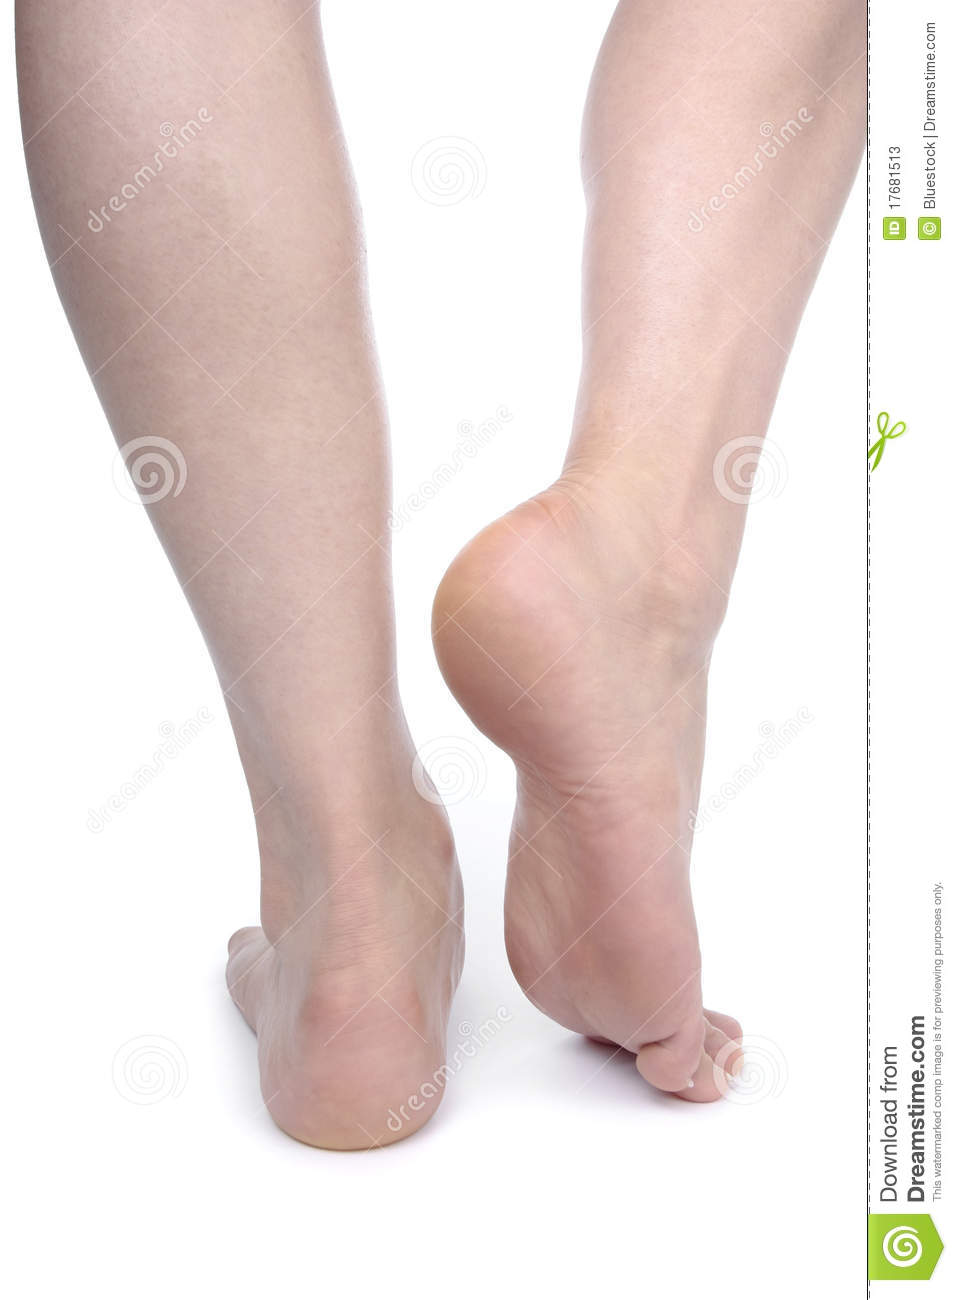 Woman Legs And Feet Isolated Over White Stock Photos - Image: 17681513